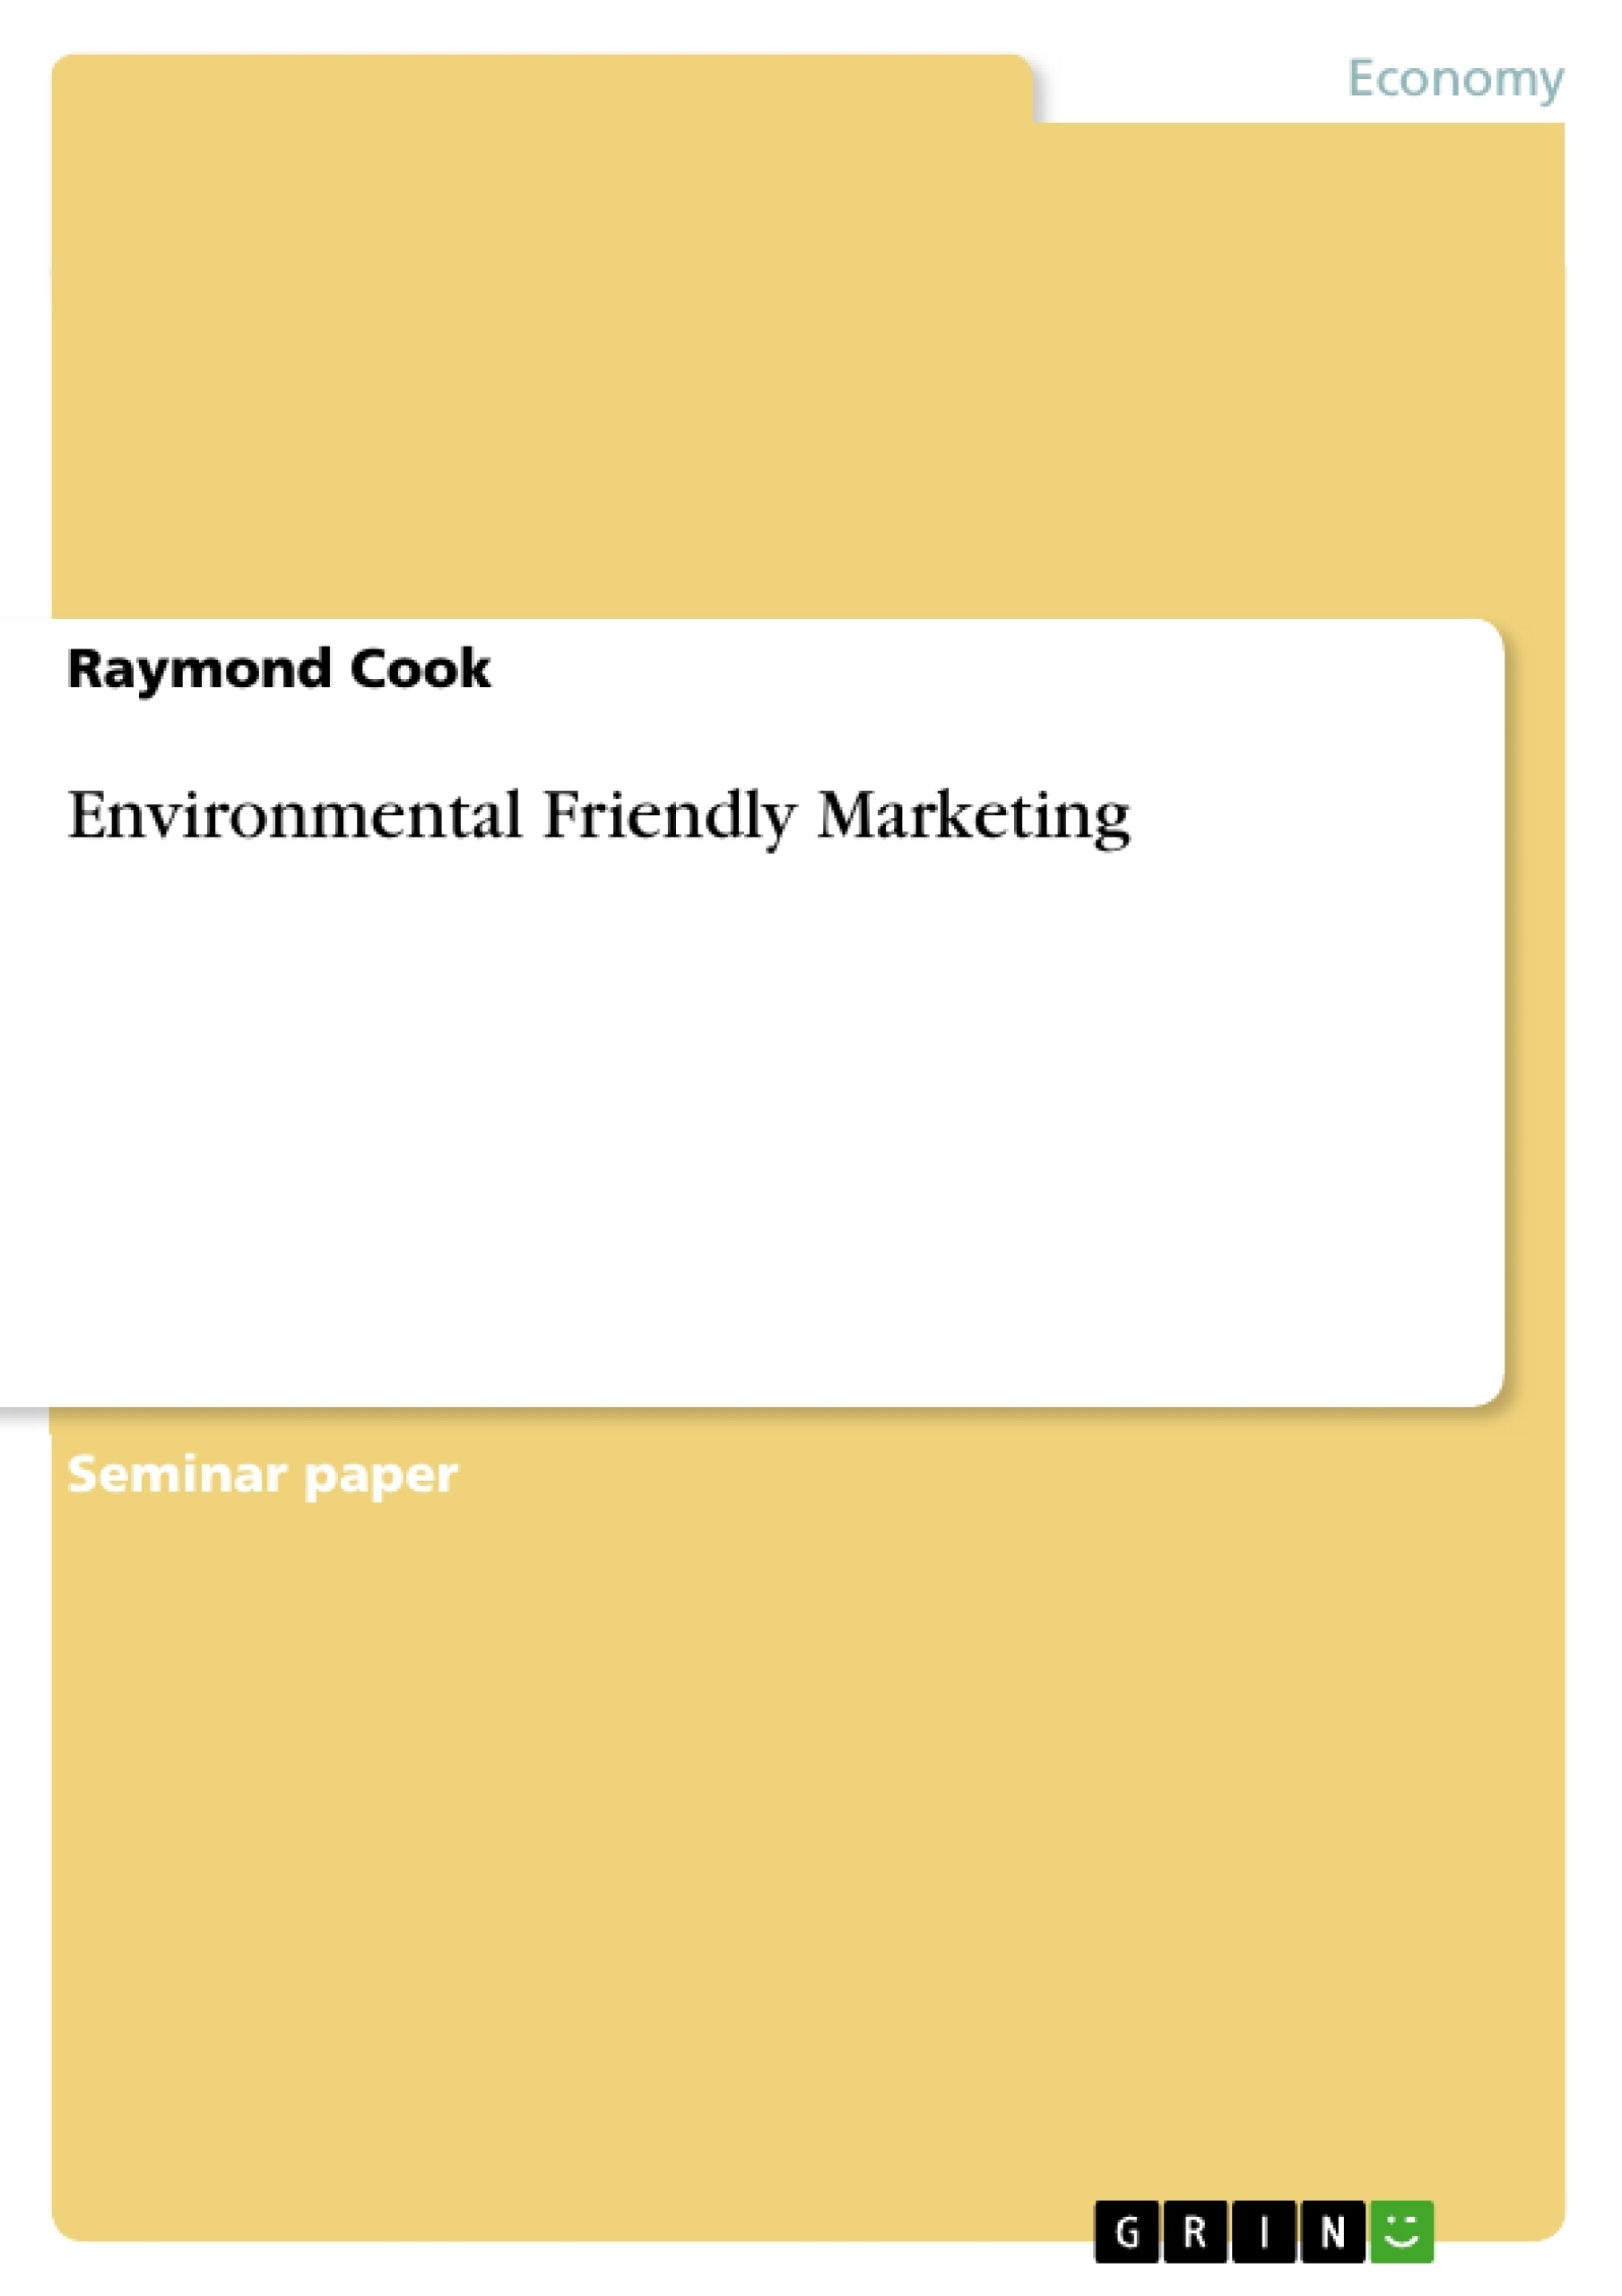 Master thesis environmental economics